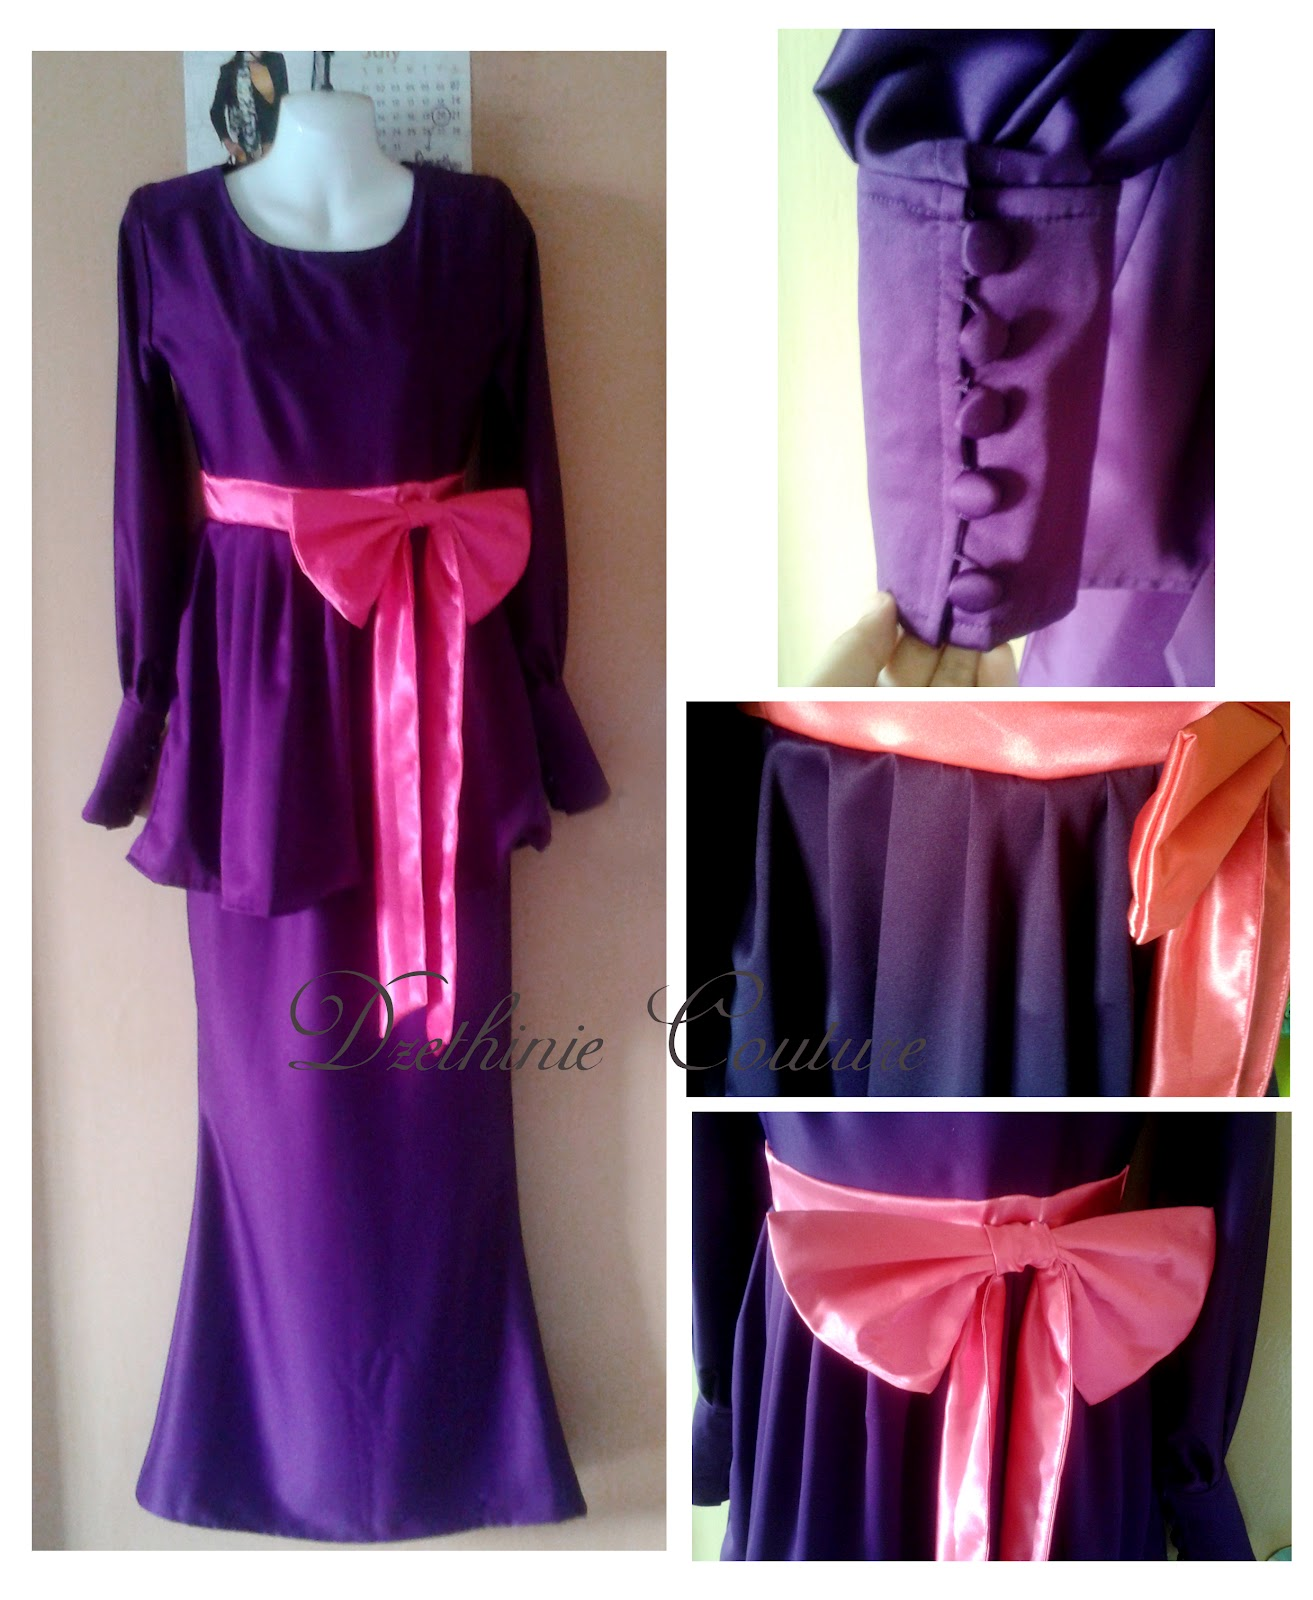 Pleated Peplum Kurung with Cuff Sleeve For Suraya